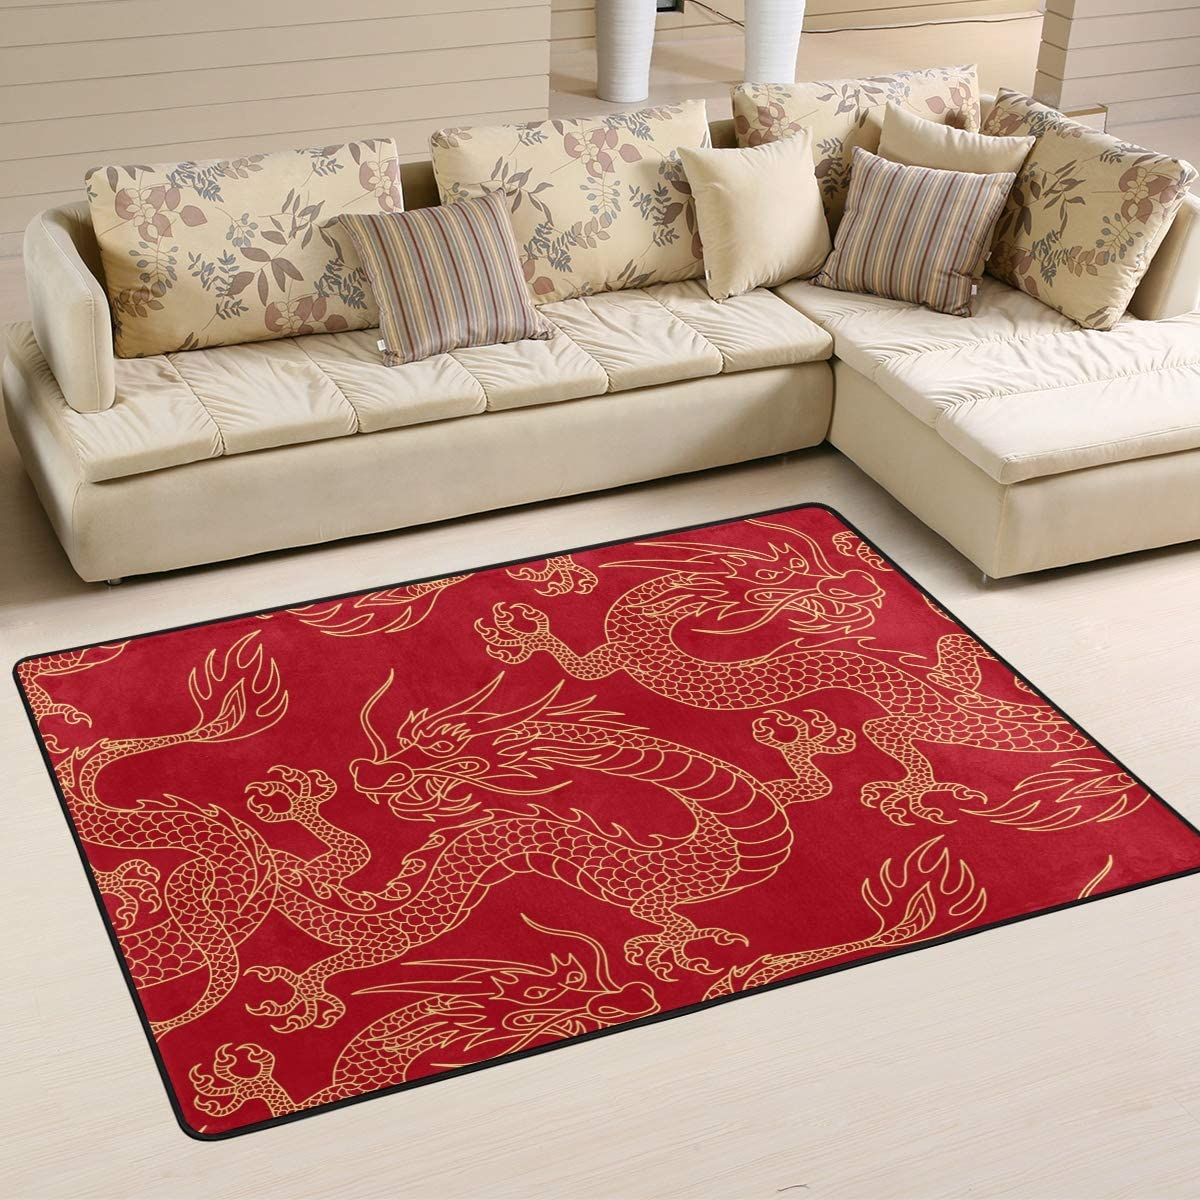 Red Traditional free Chinese Dragon Area Rug Po Indoor Carpet 6' 4' x Long-awaited